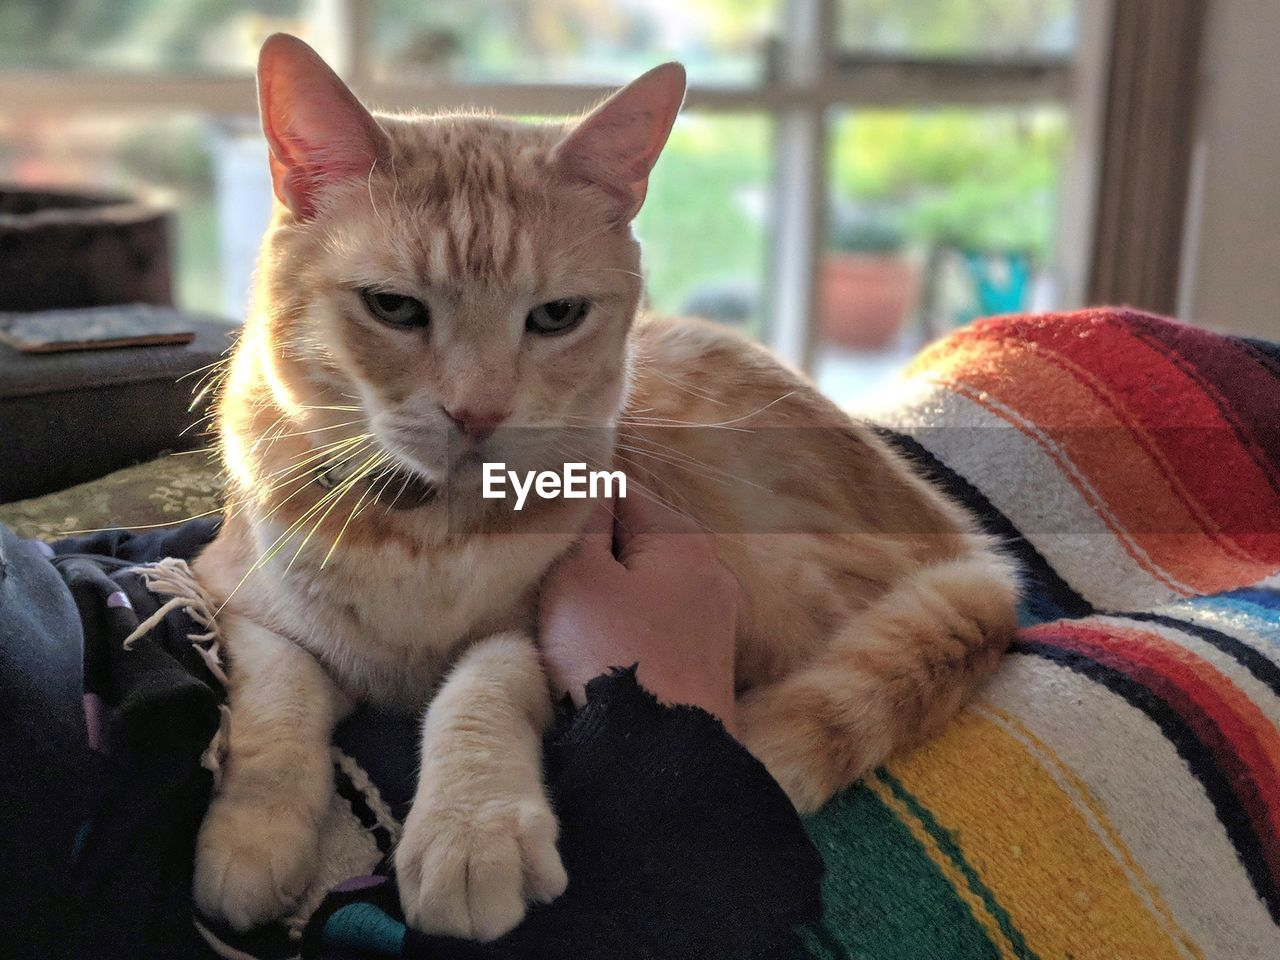 pets, domestic, domestic animals, mammal, one animal, cat, feline, domestic cat, vertebrate, portrait, looking at camera, relaxation, focus on foreground, indoors, whisker, people, close-up, sitting, ginger cat